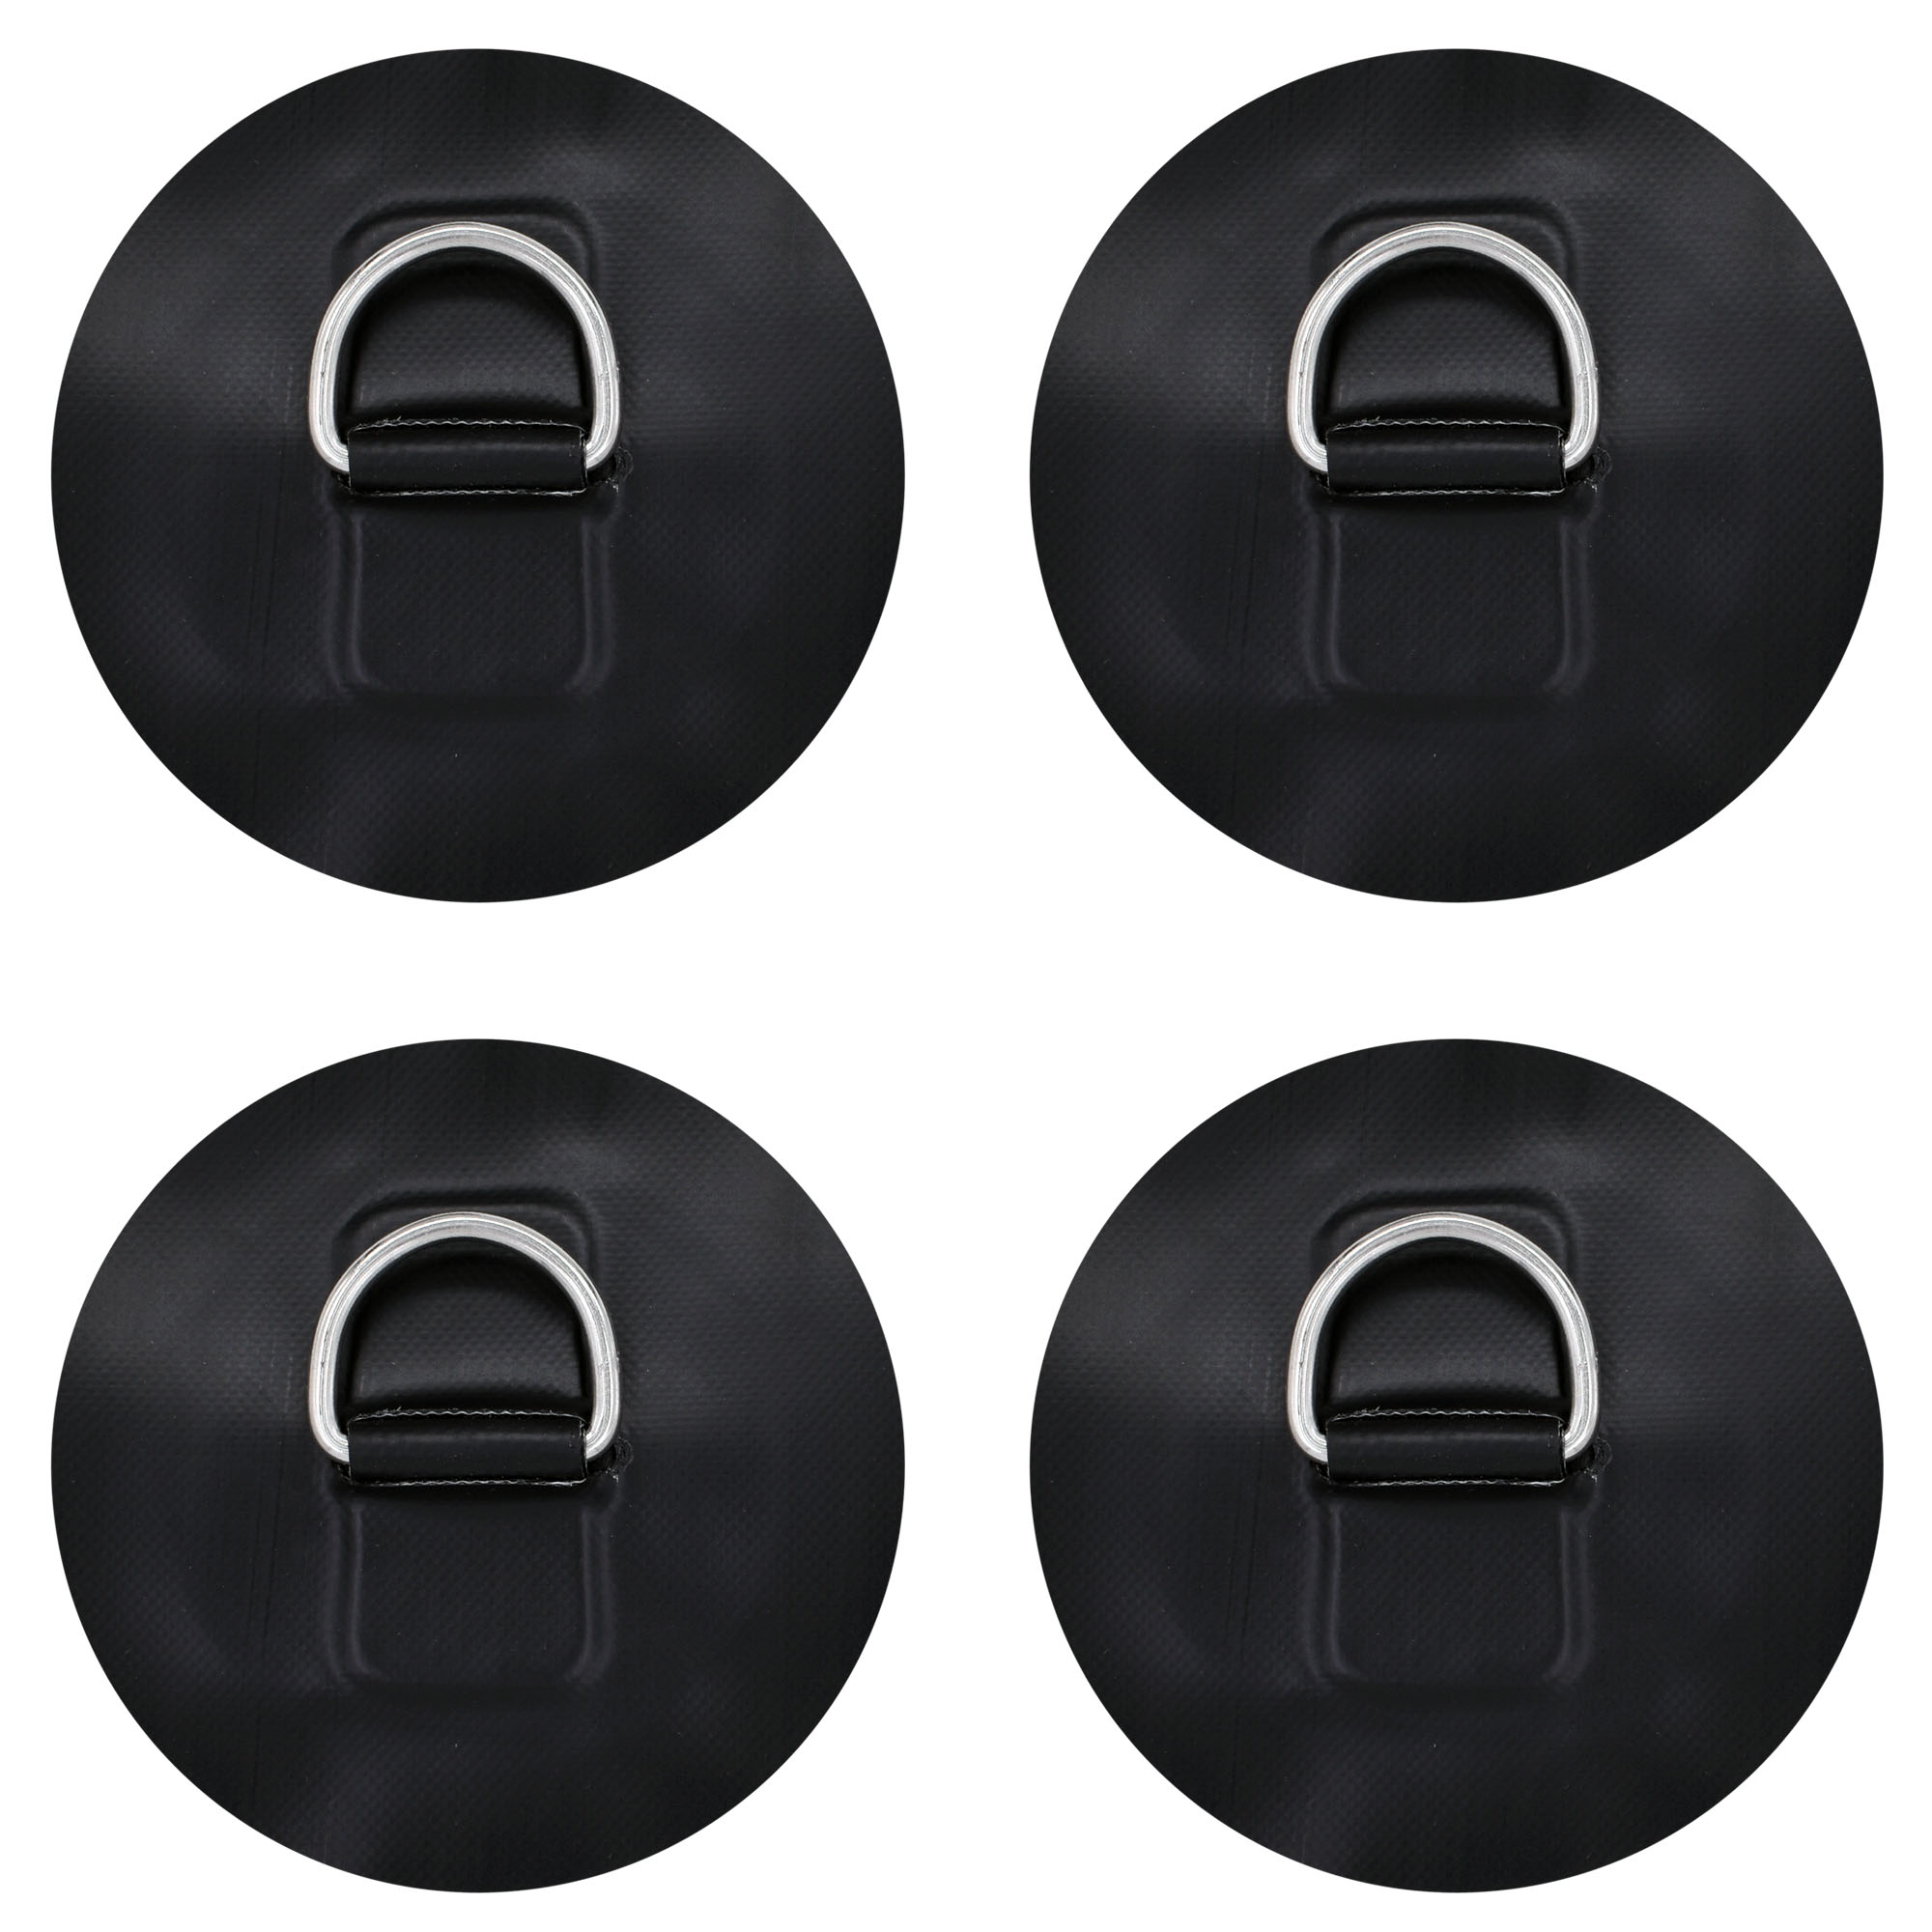 D Ring Patch For PVC Inflatable Boat SUP W Stainless Steel D Ring - NO Glue - Instruction Included